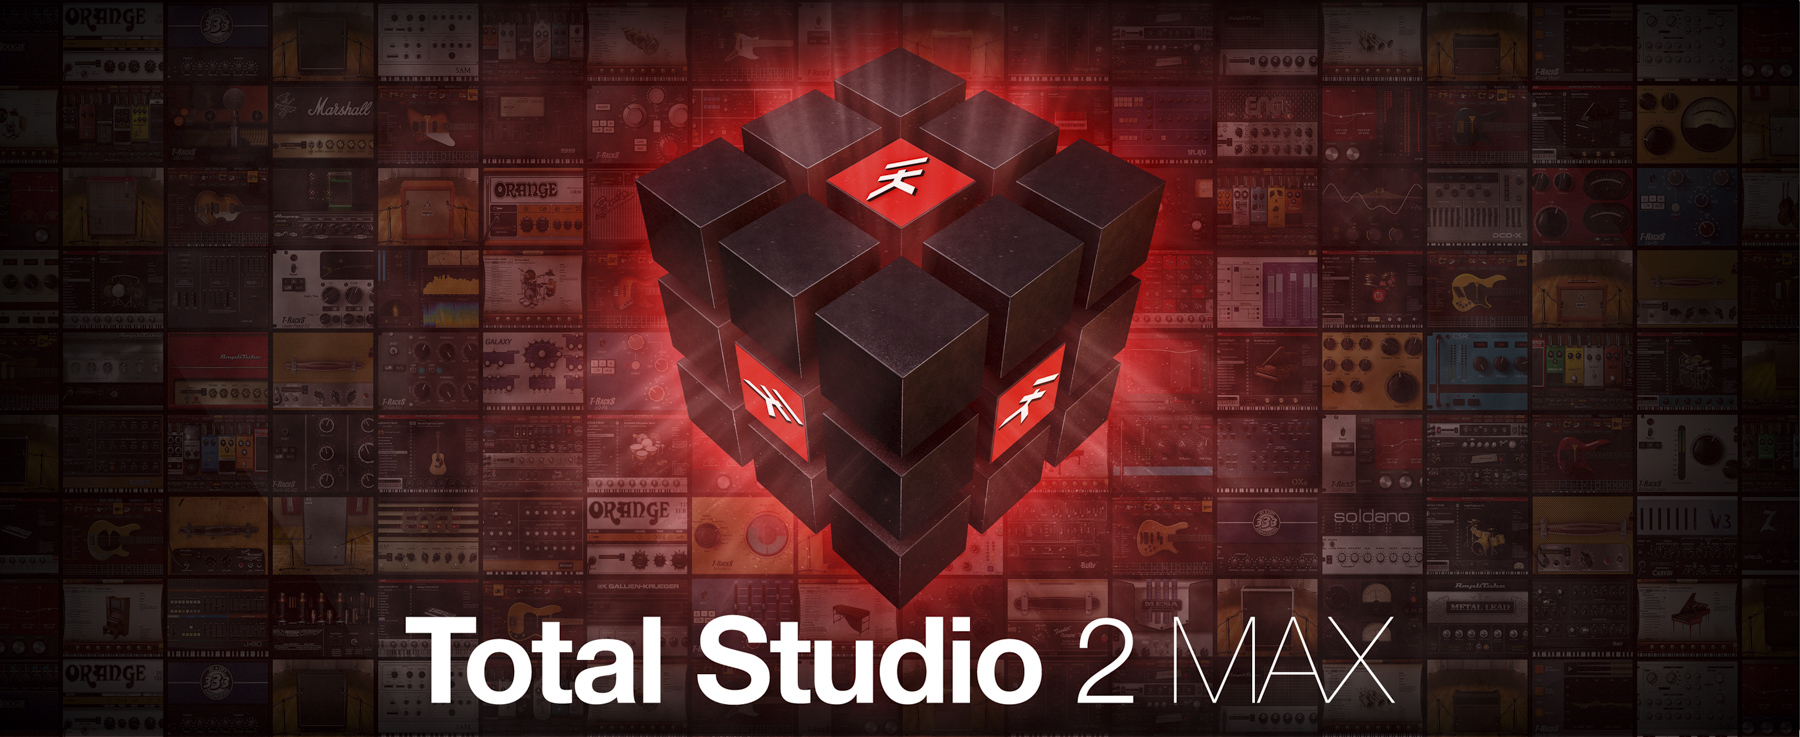 News: Vollausgestattetes Softwarepaket Total Studio 2 MAX von IK Multimedia